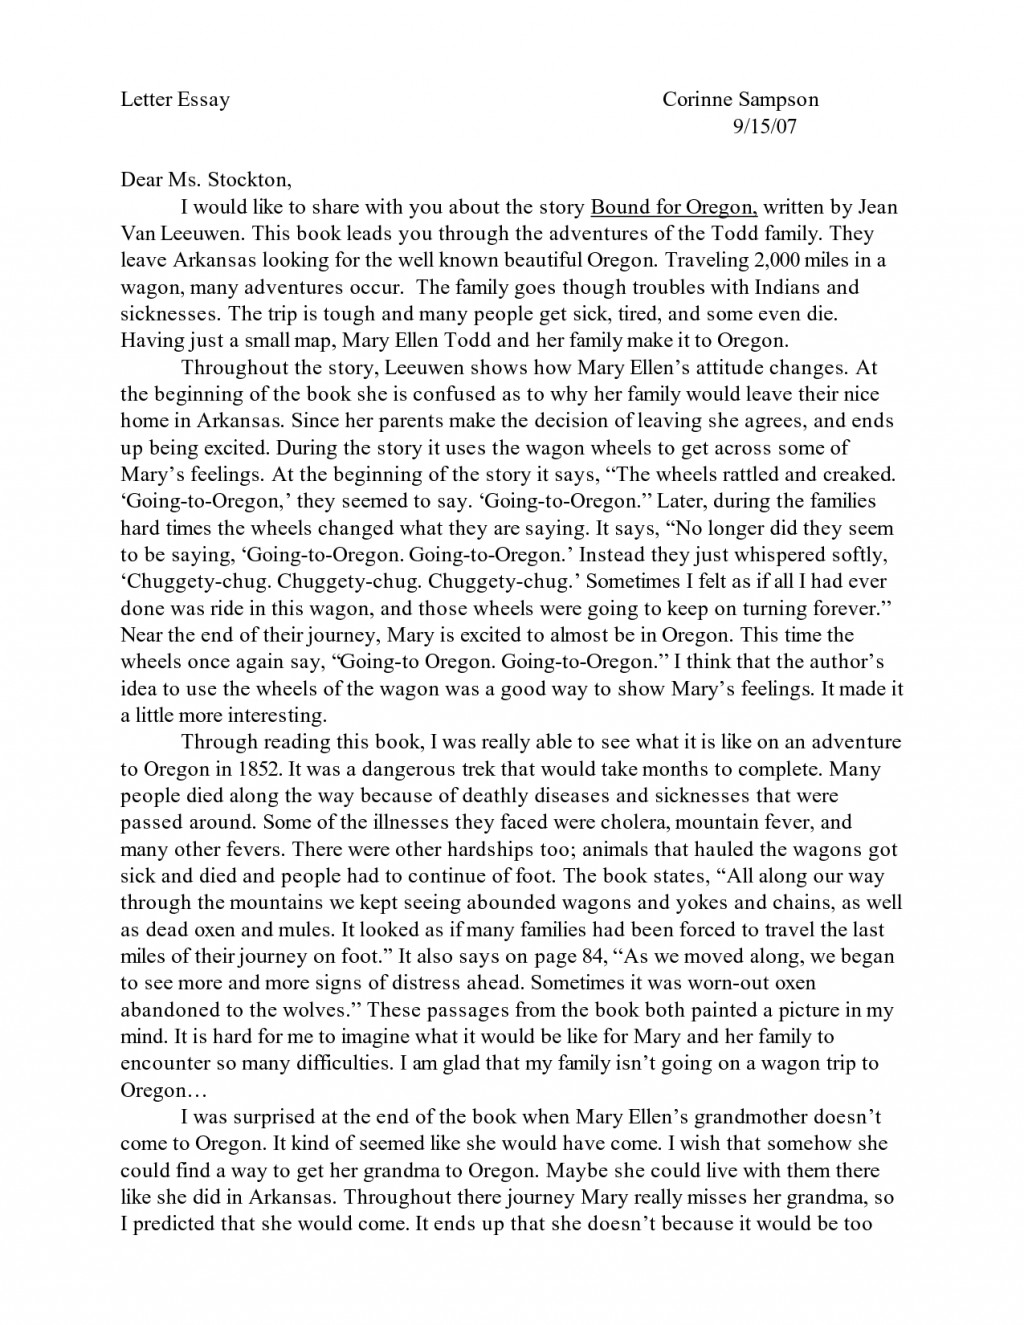 001 Essay Example Examples Of Scholarship Essays Remarkable For Nursing Writing College Students A About Yourself Large